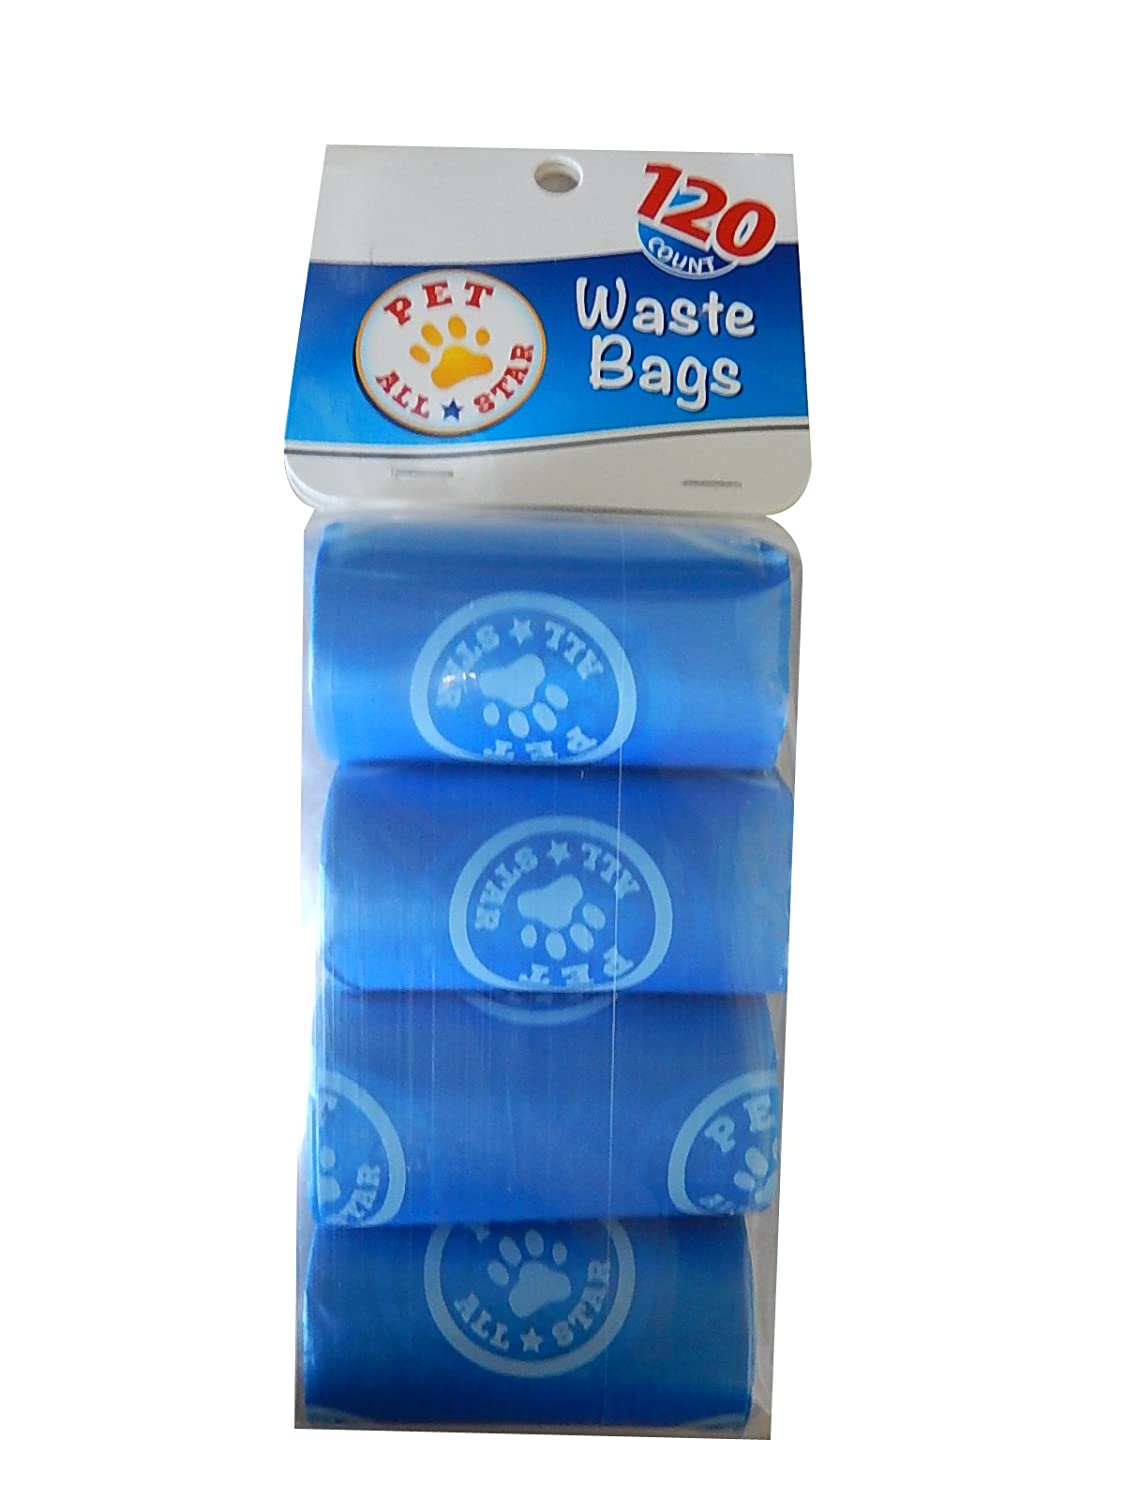 Amazon.com: Mascota All-Star bolsas de basura 120 unidades ...